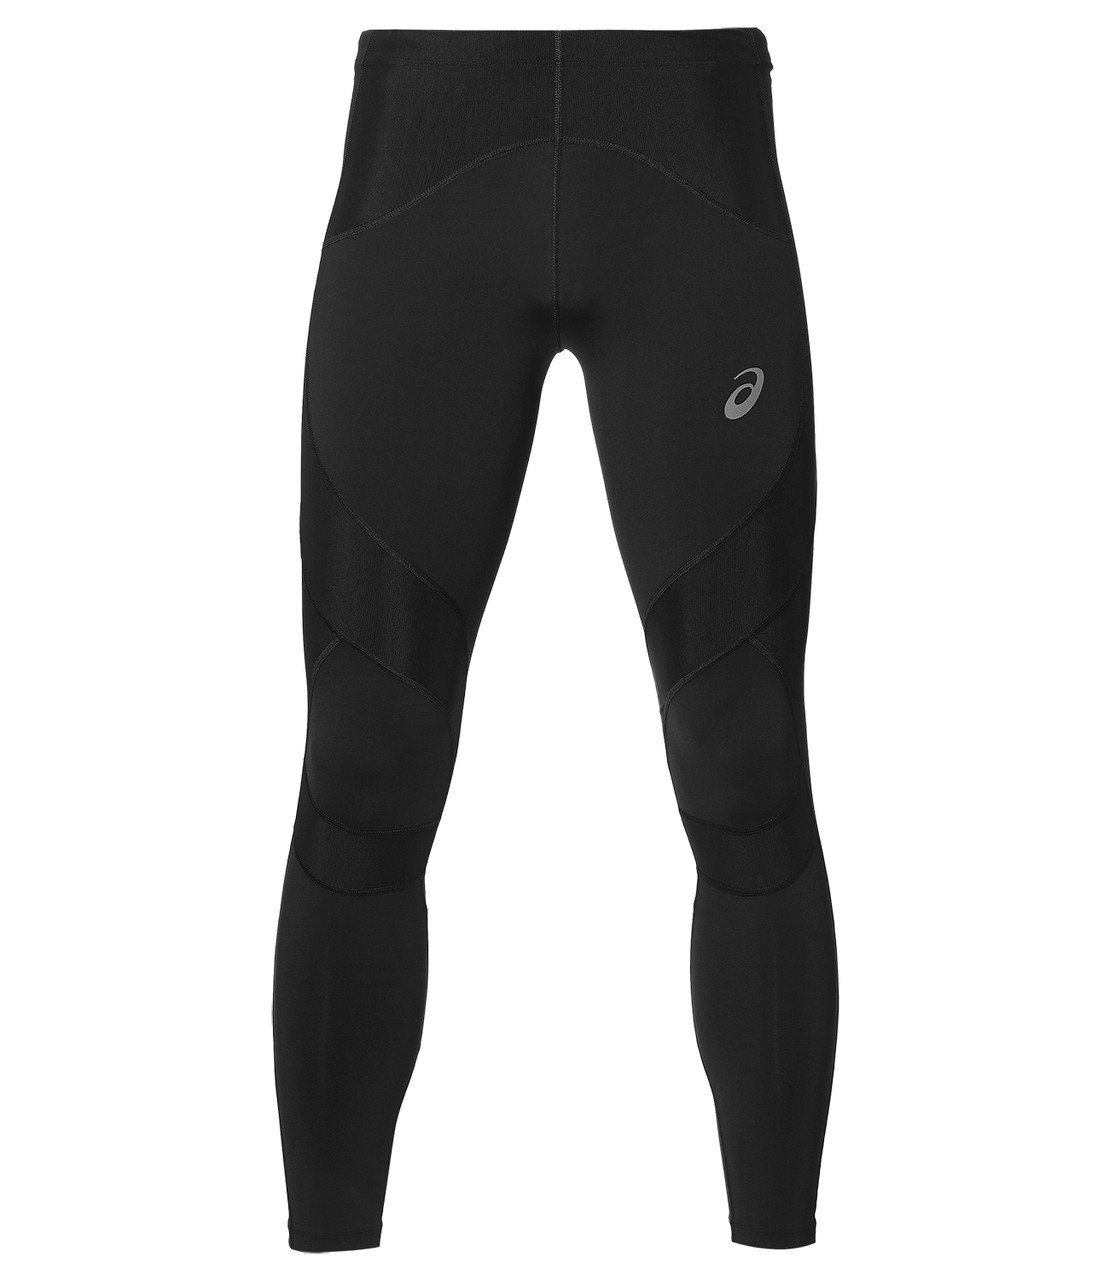 Тайтсы для бега Asics Leg Balance Tights Код 143628 0901